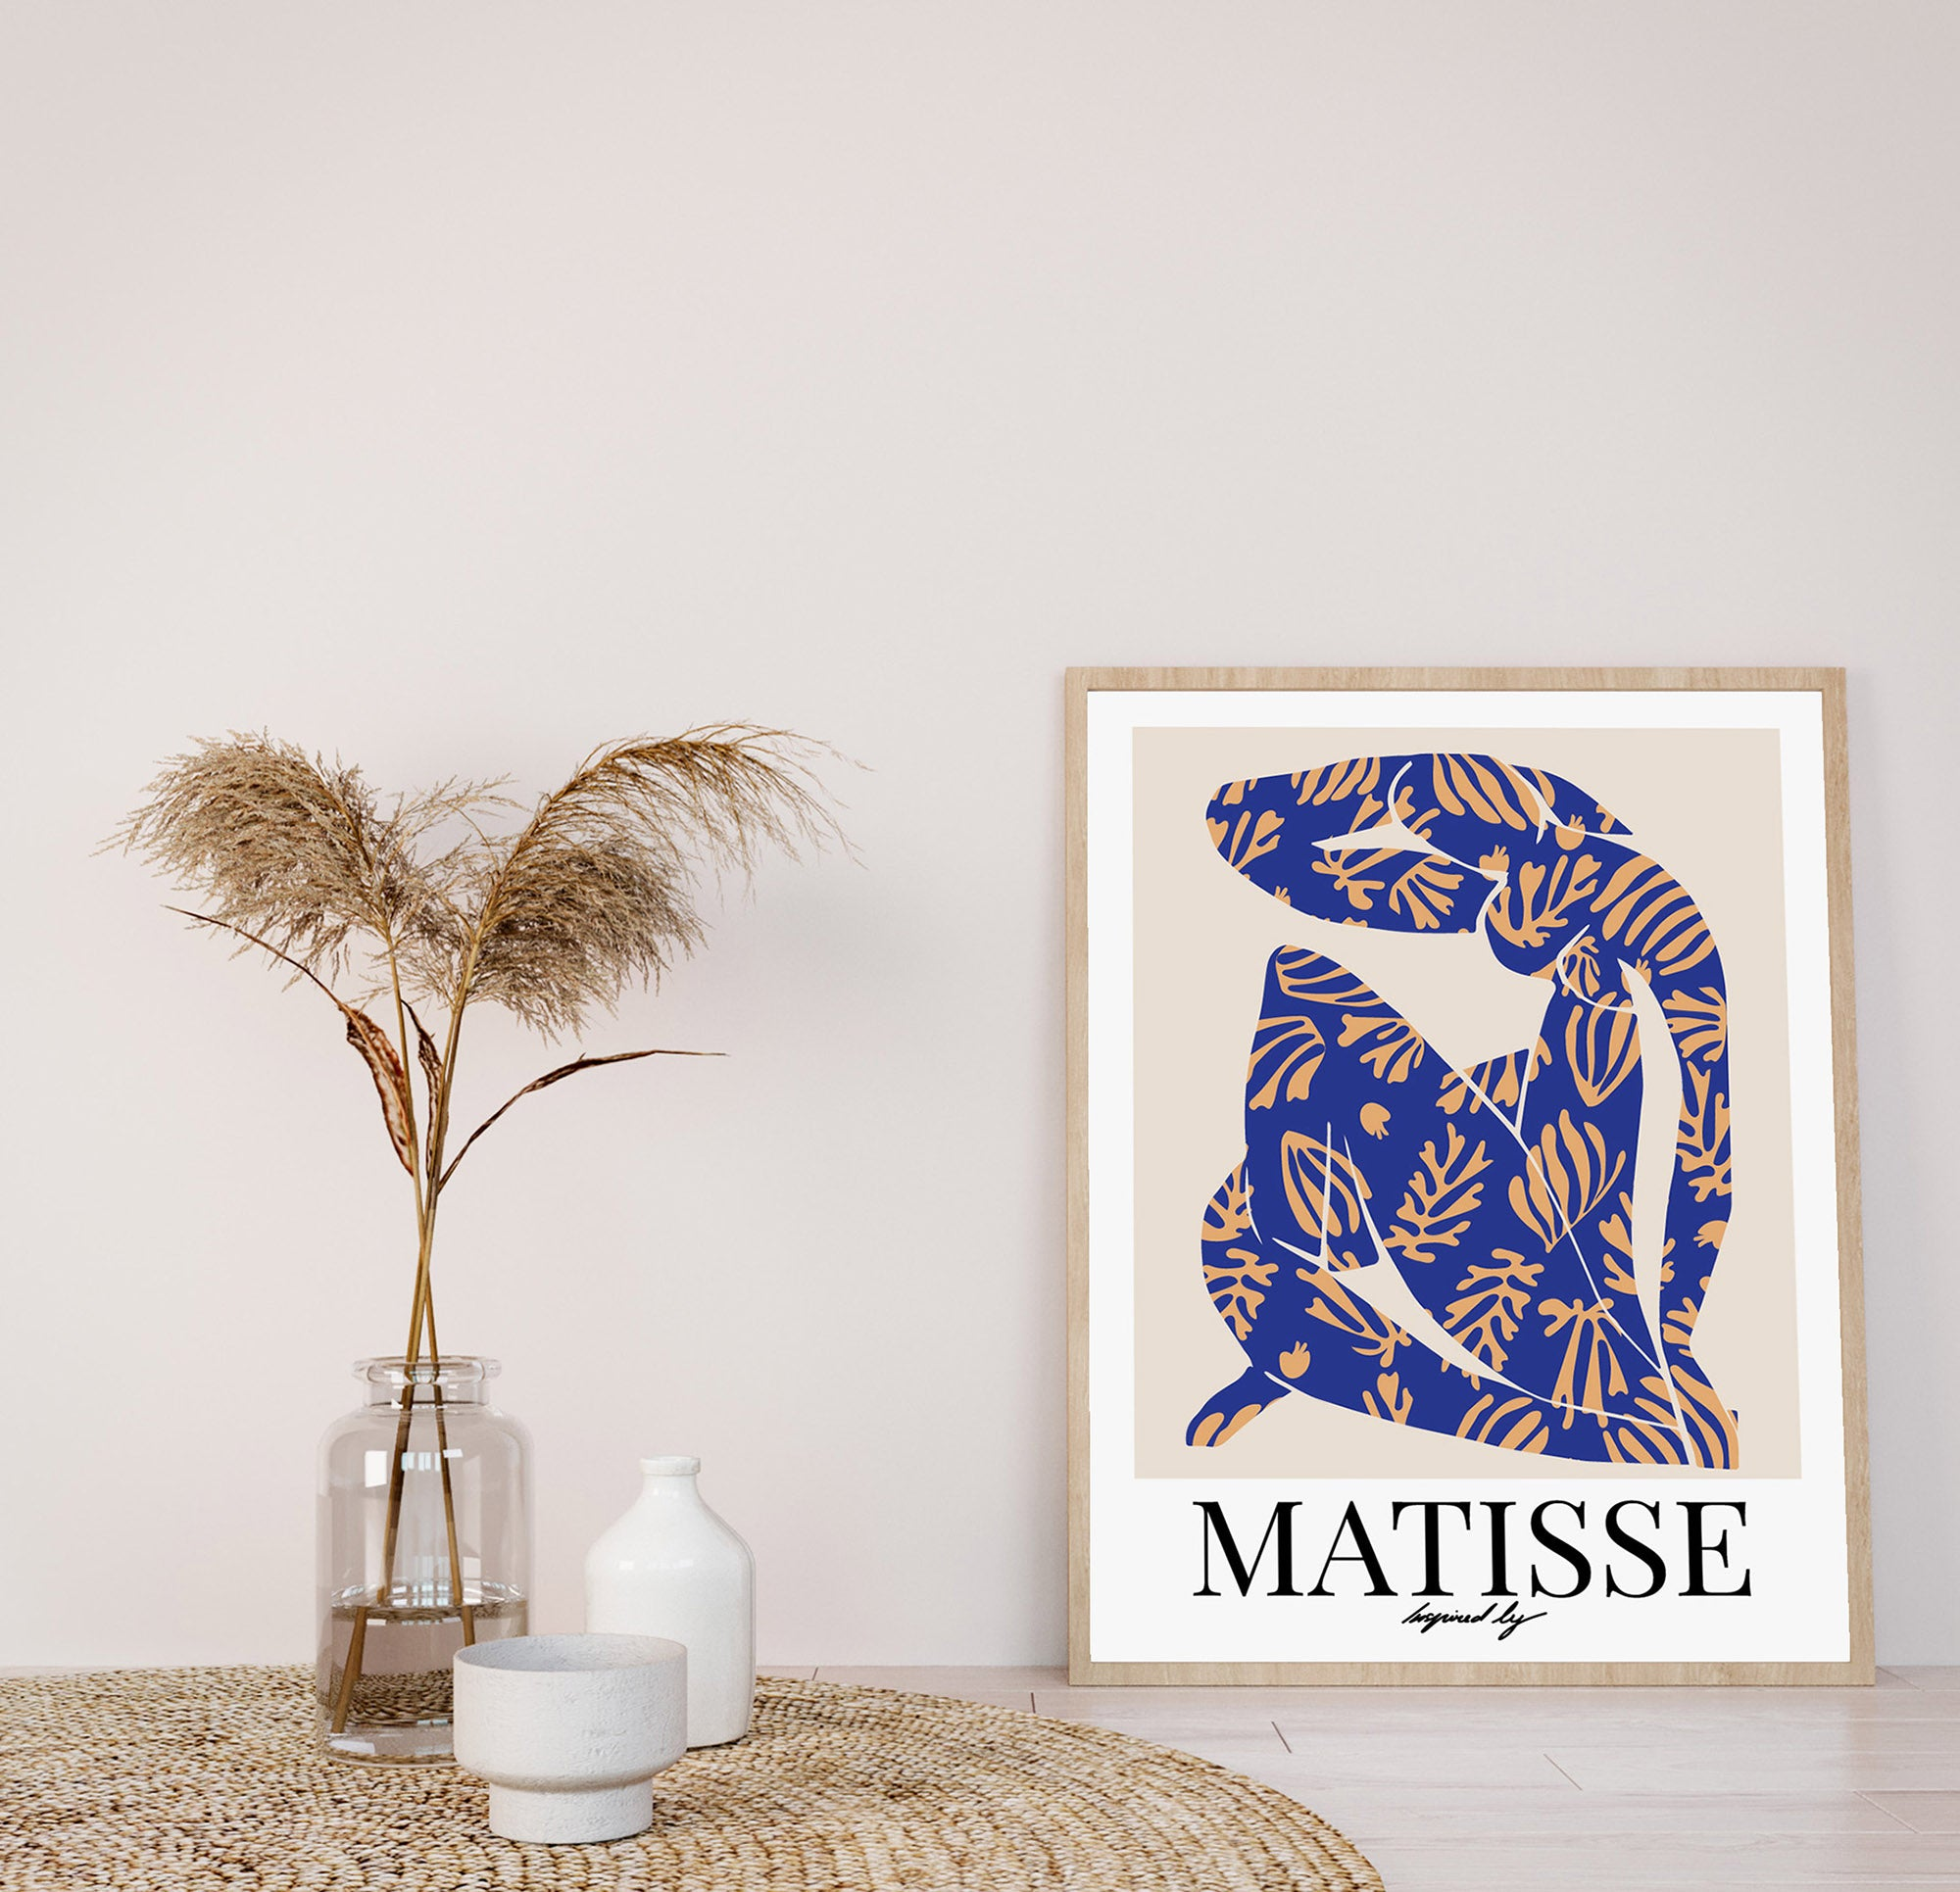 Henri Matisse Blue Nude 1953 Exhibition Poster Nude Woman